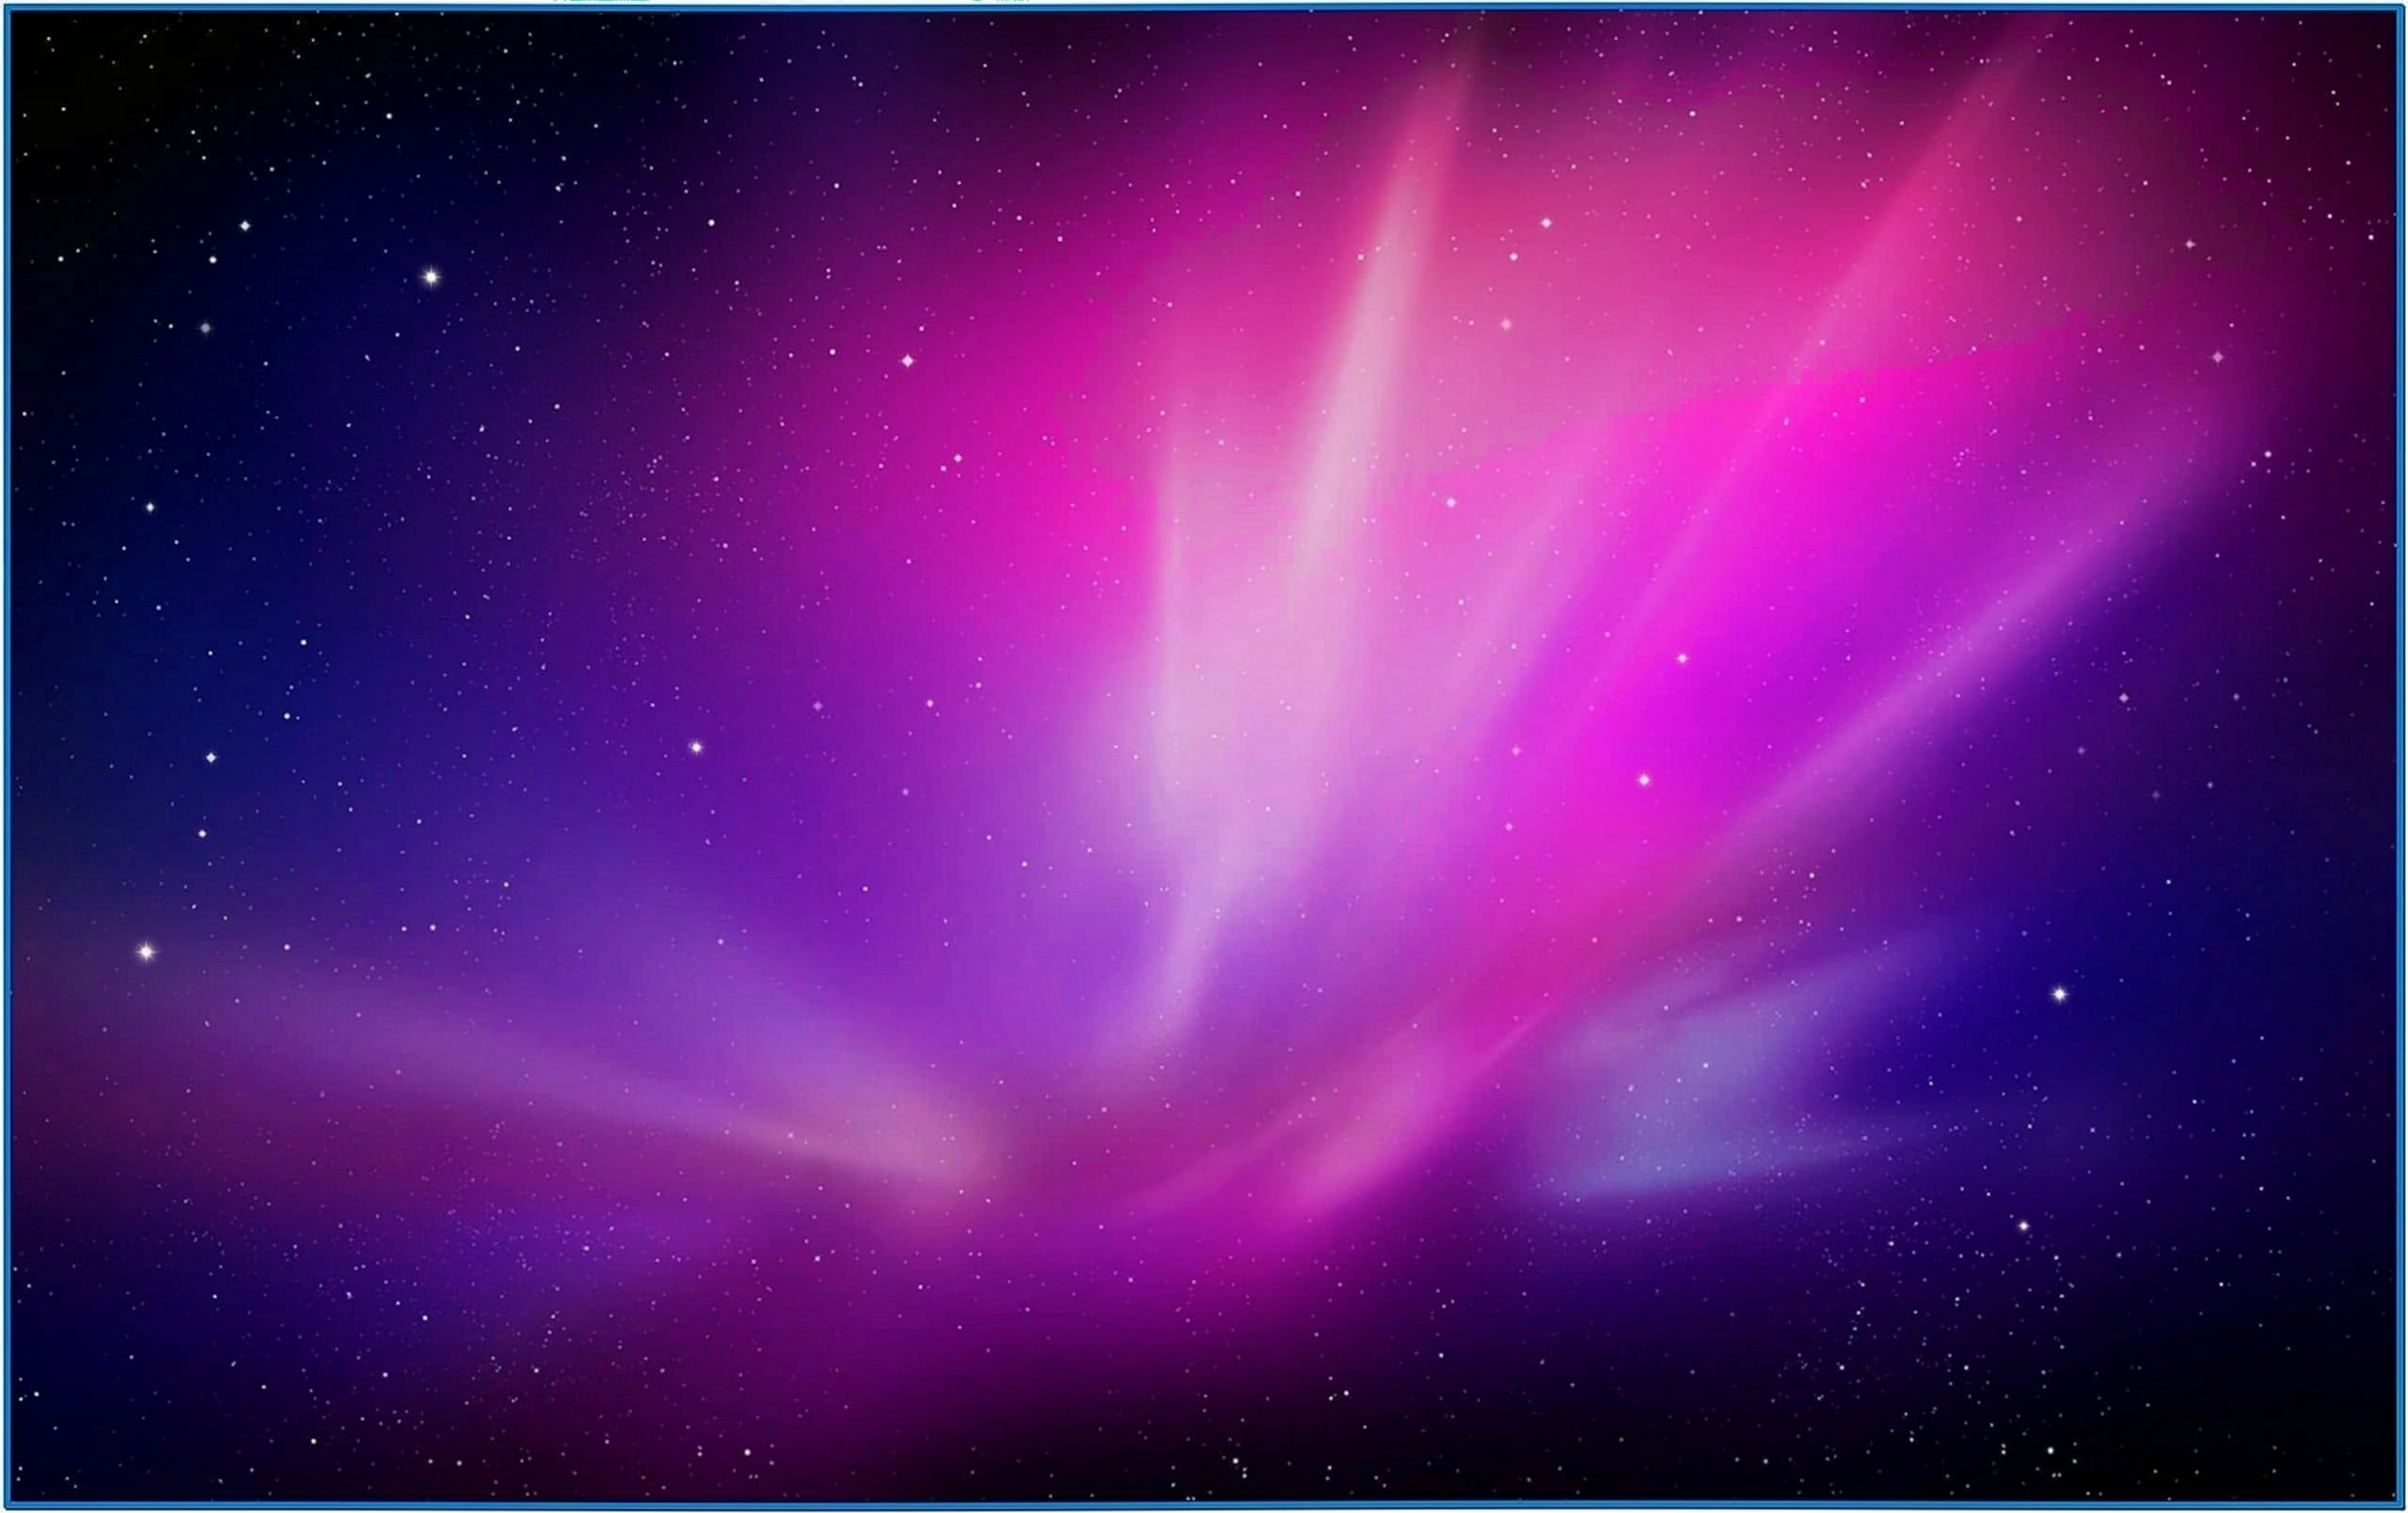 Video Screensaver Mac OS X 10.6